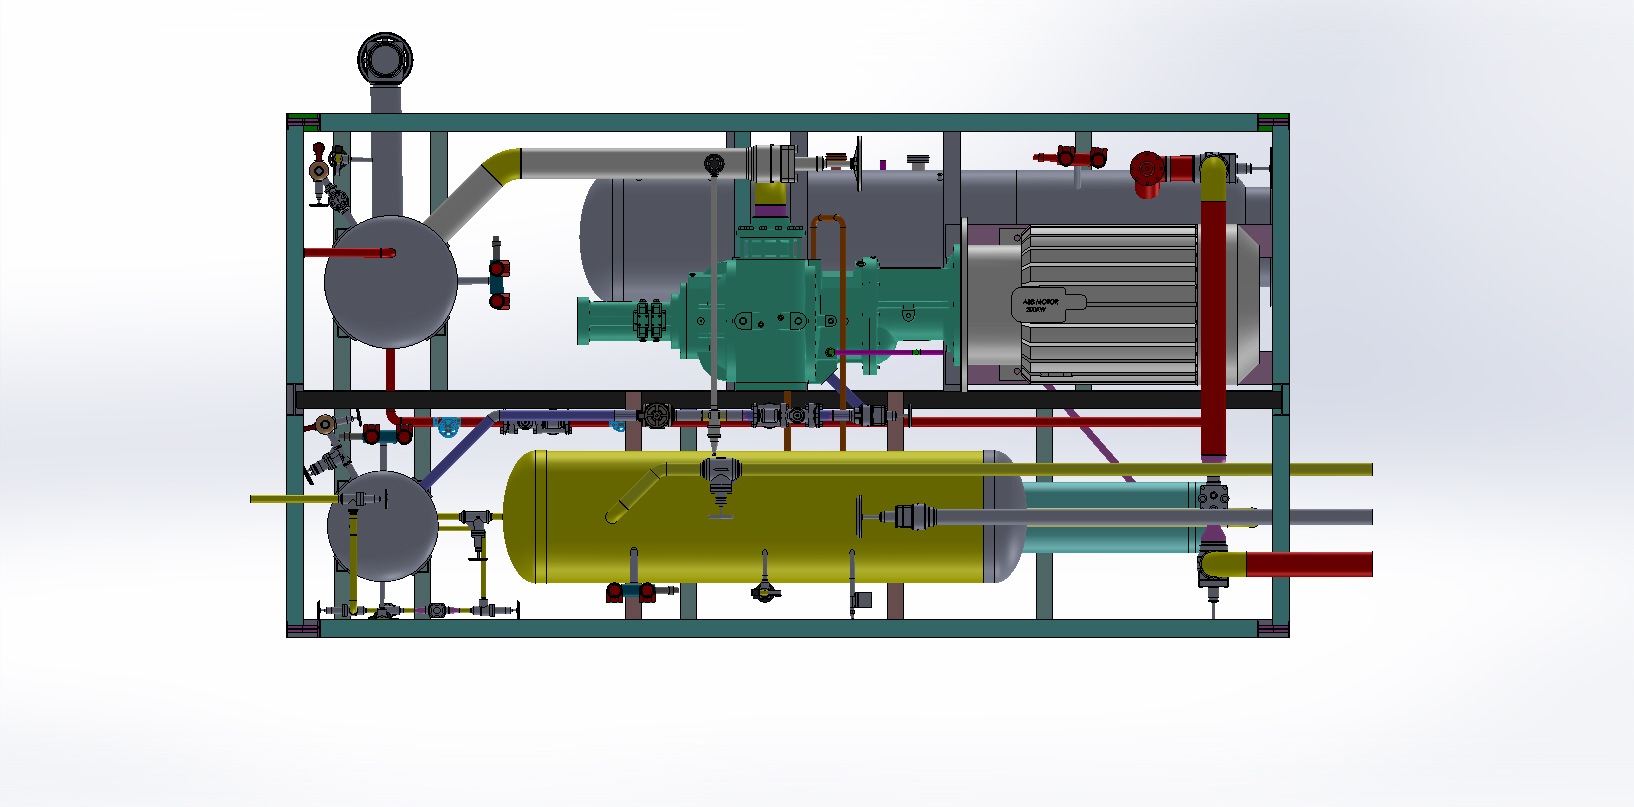 Refpack System With Screw Or Reciprocating Compressor Indusref Receivers Refrigeration Wiring Diagrams Heated Customer Supplies The Cooling Tower Per Heat Of Rejection And Water Conditions Specified